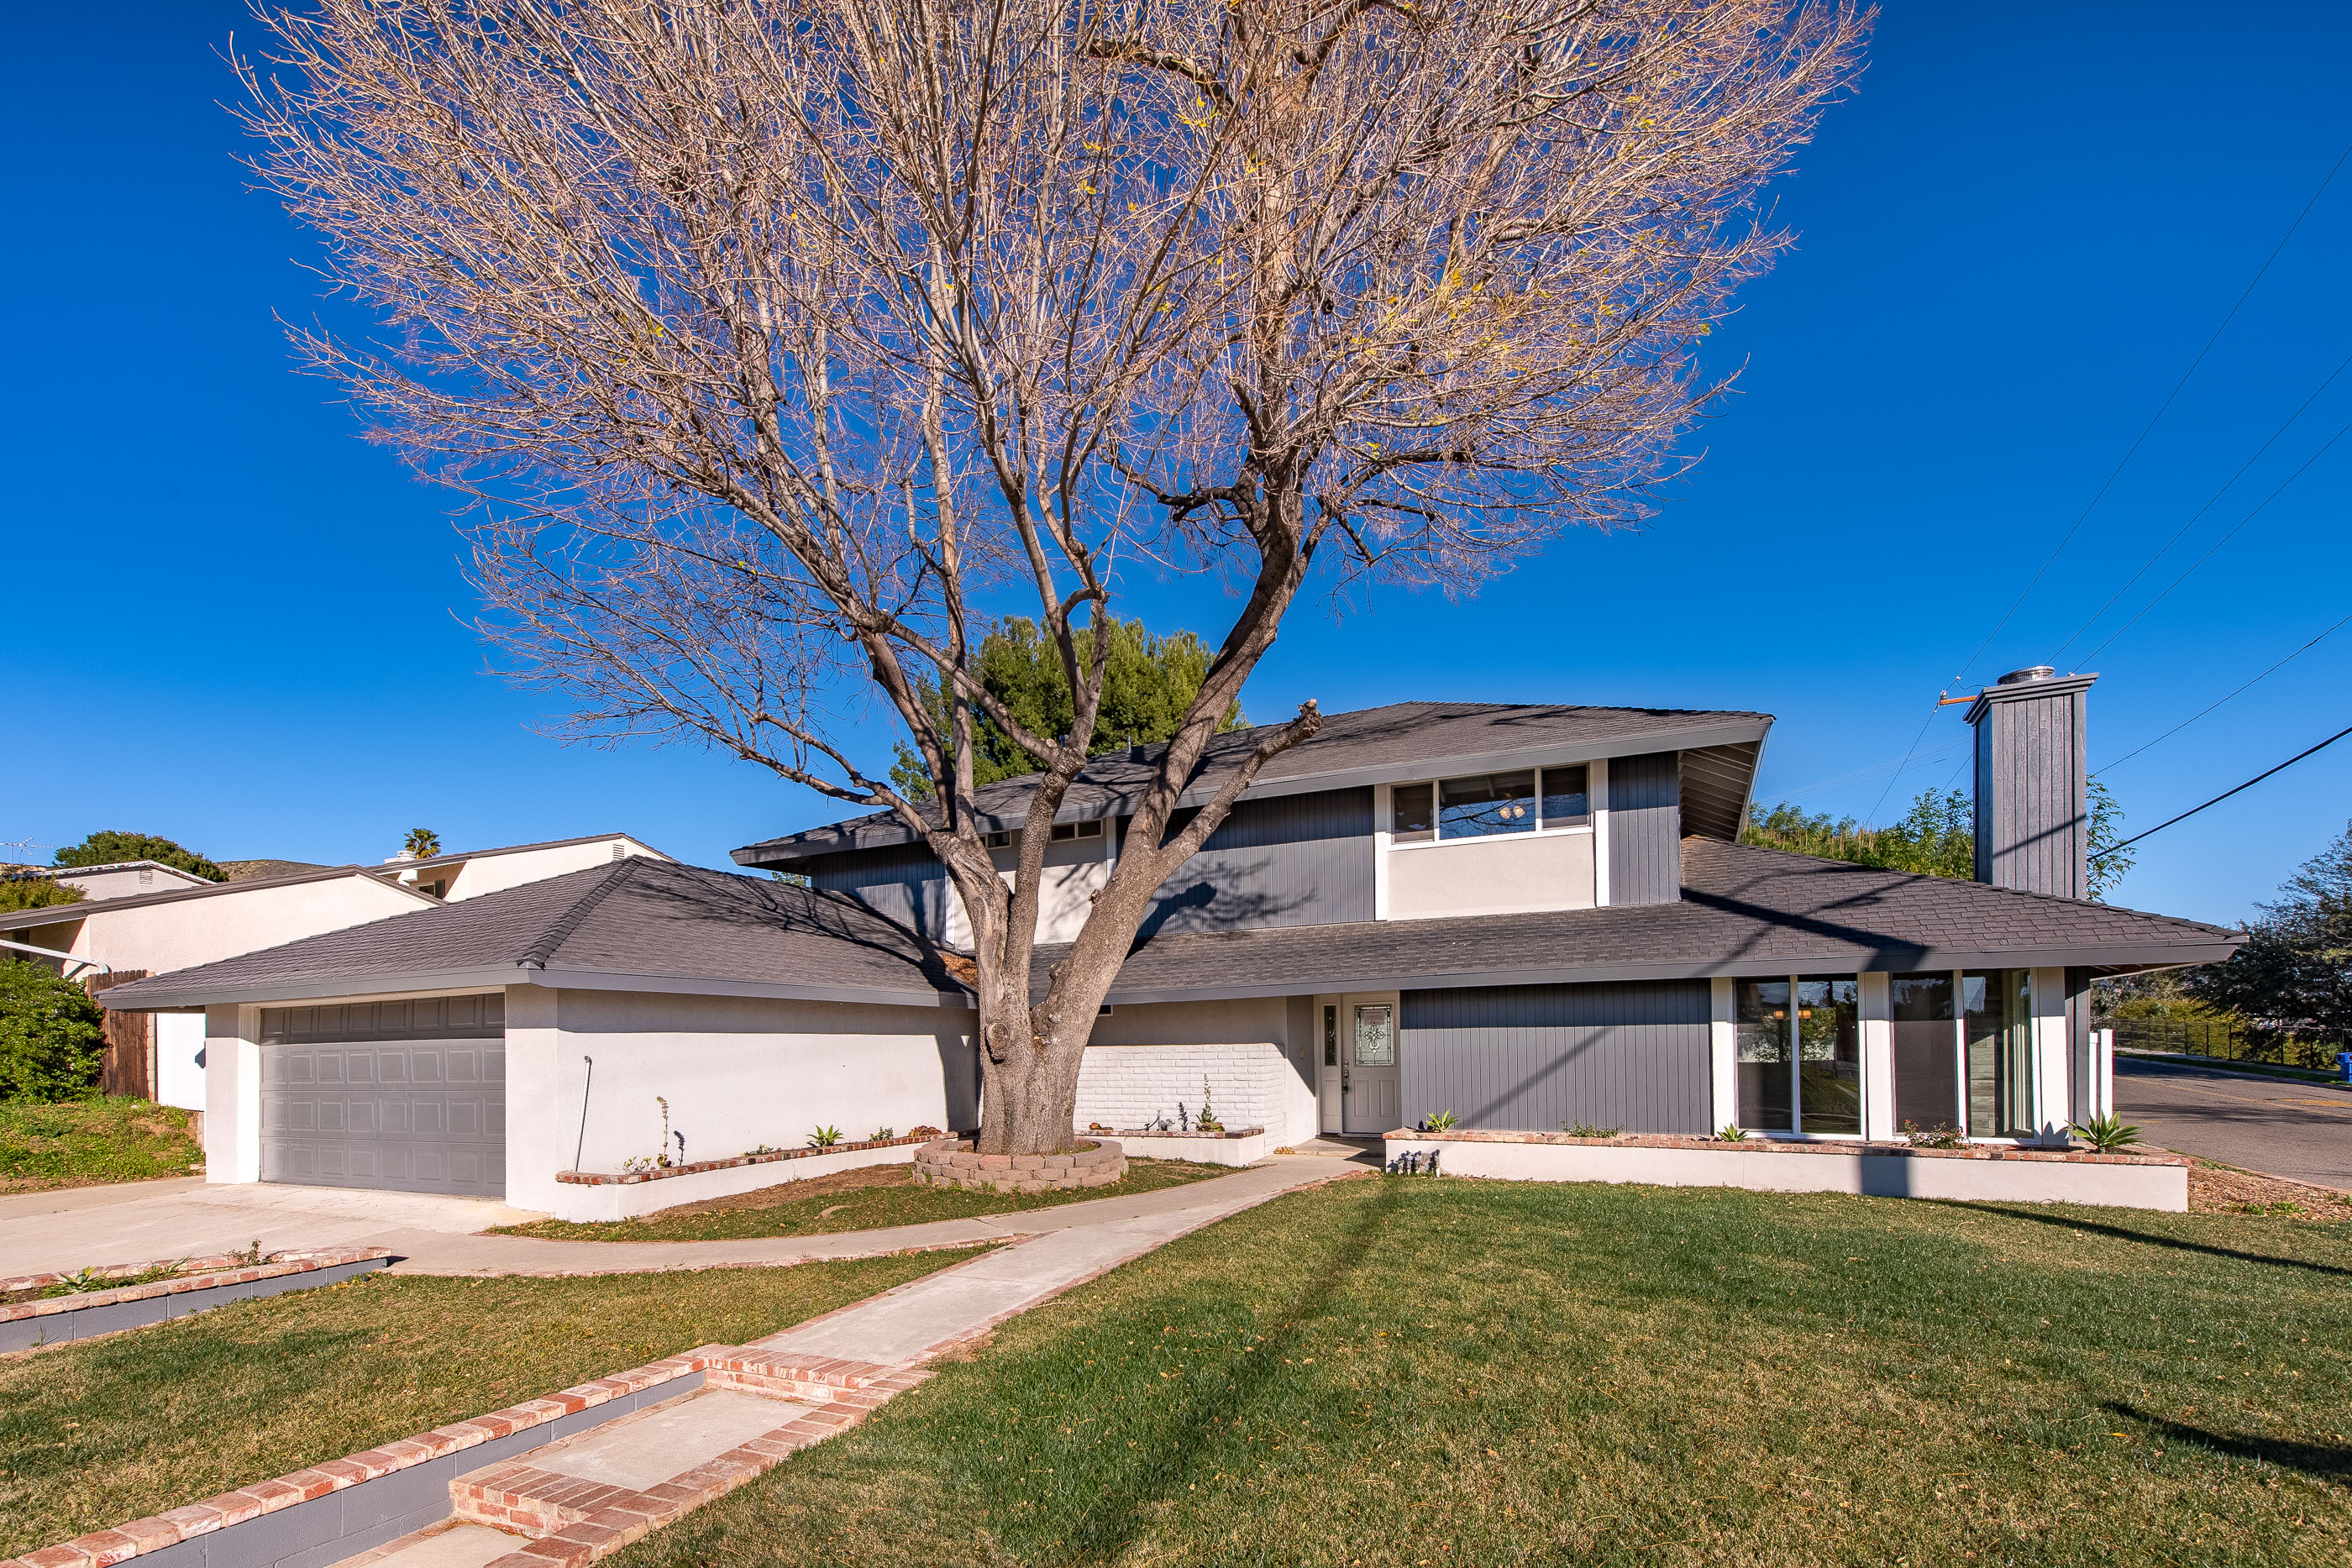 3402 Lathrop Ave Simi Valley Ca 93063